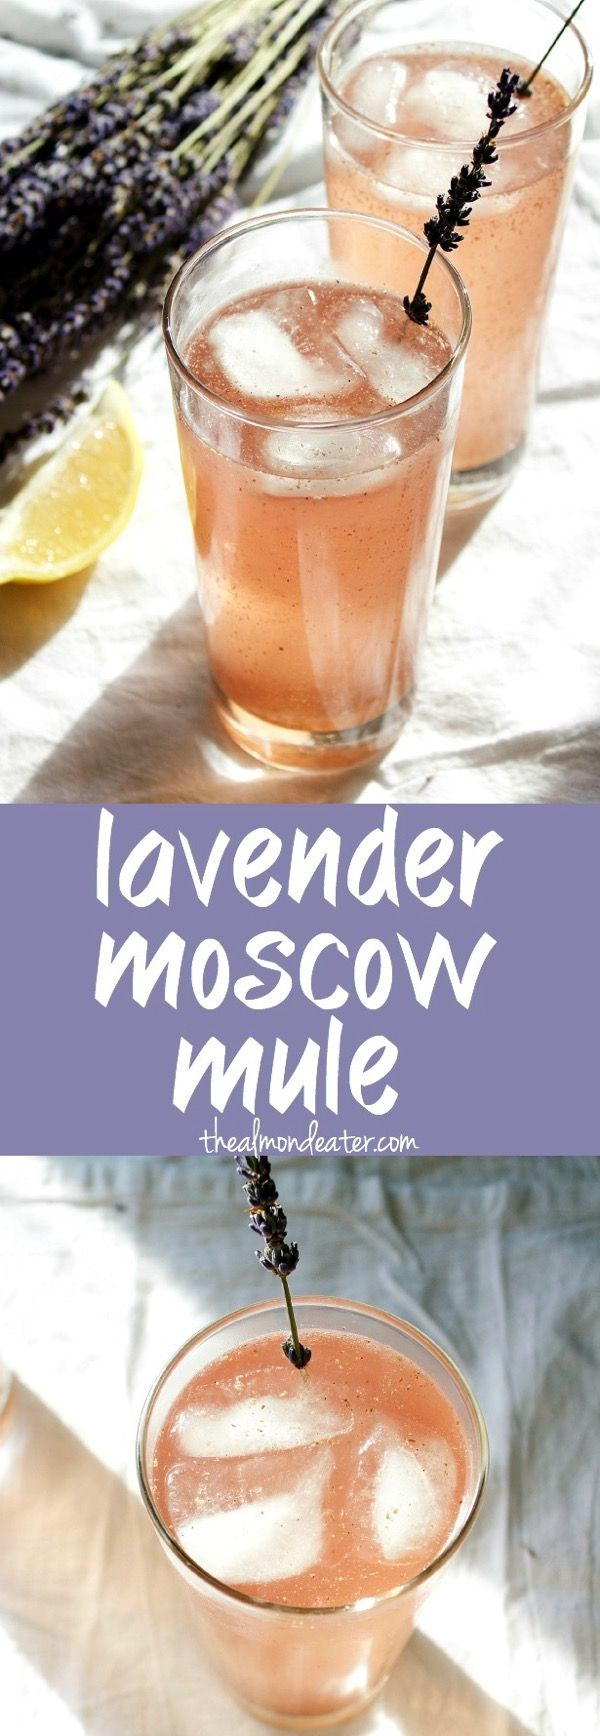 Lavender Moscow Mule   A seriously refreshing take on the classic drink   thealmondeater.com